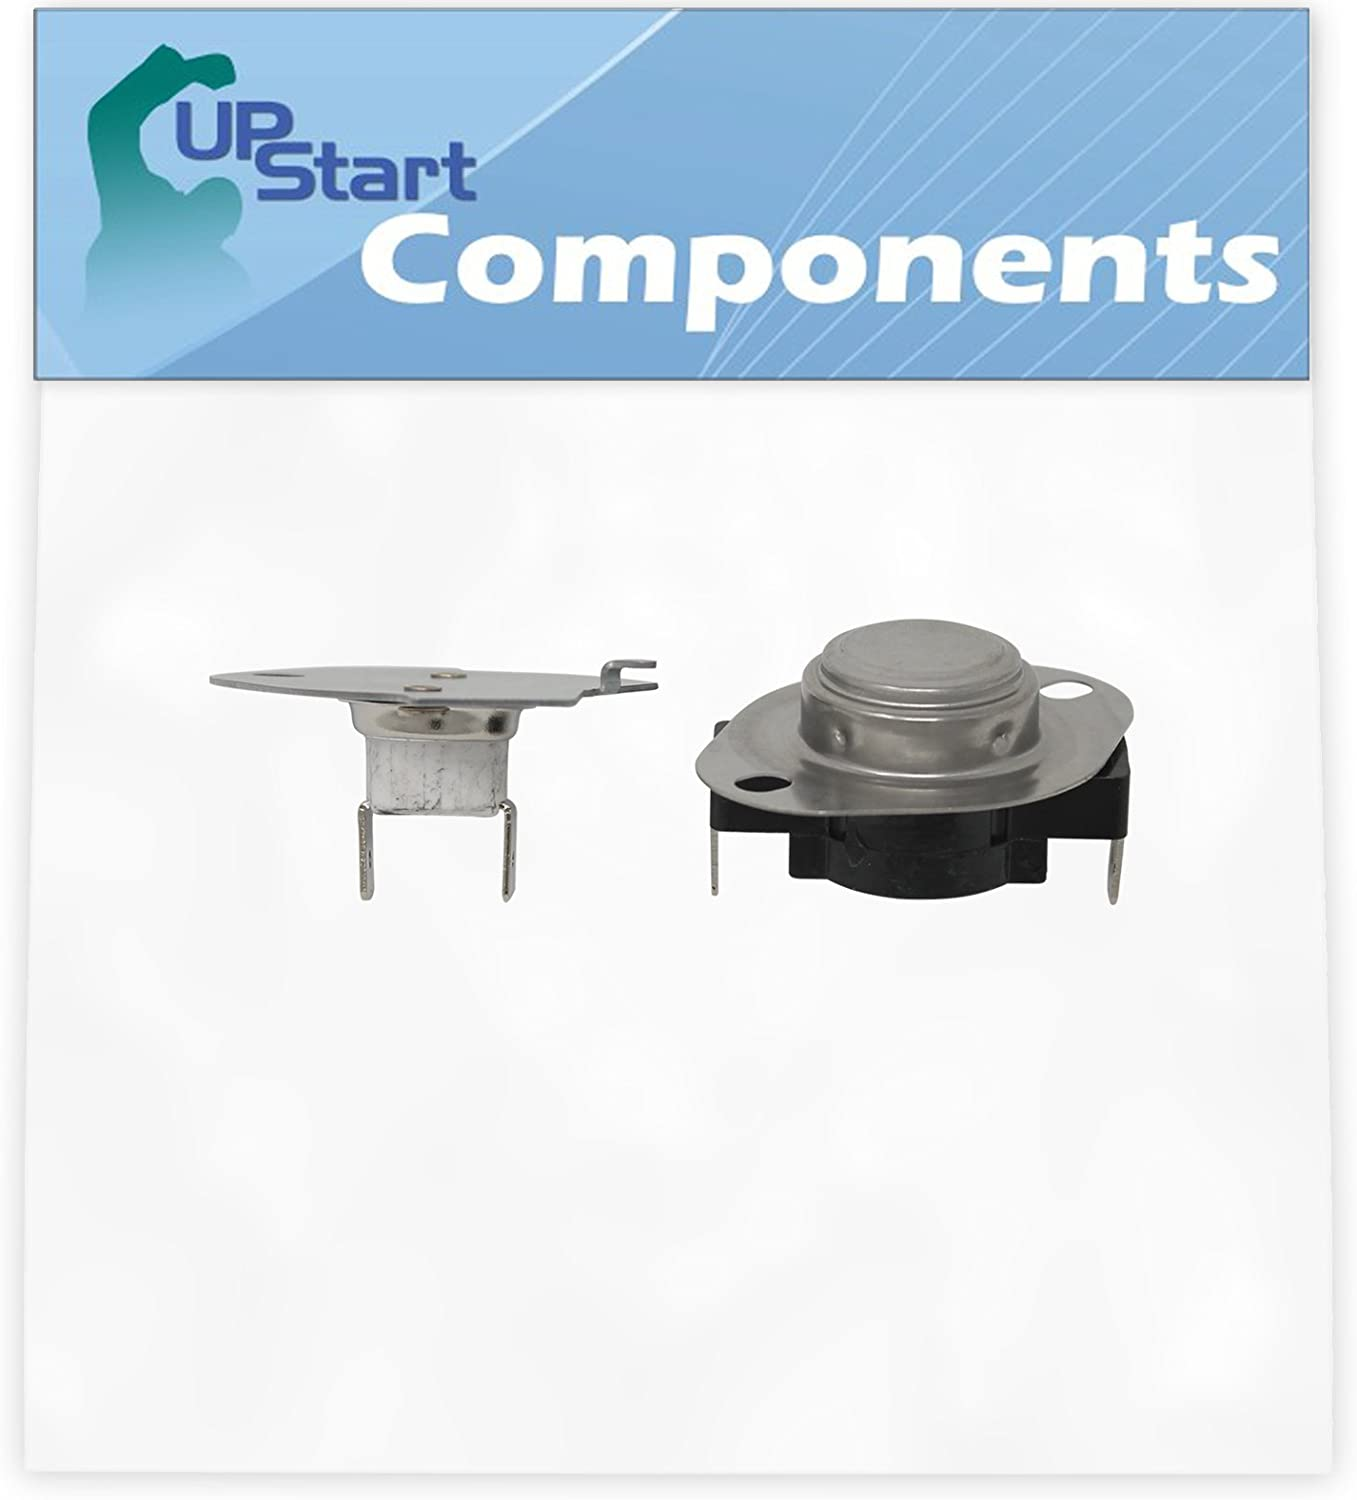 Replacement 279769 Thermal Cut-Off for Whirlpool LEC6848AW2 Residential Electric Dryer